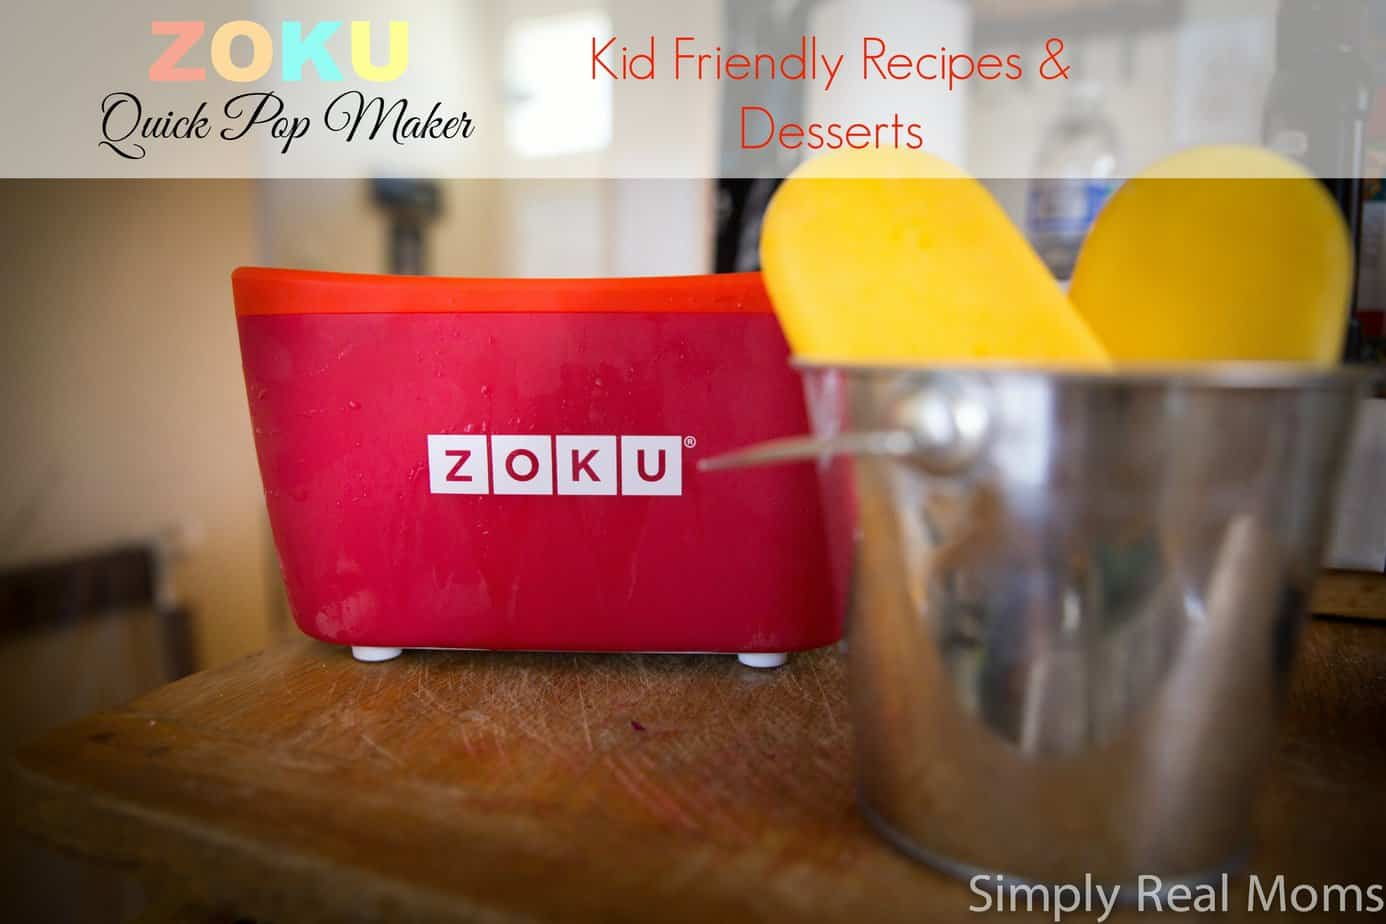 We Love the Zoku Quick Pop Maker! 1